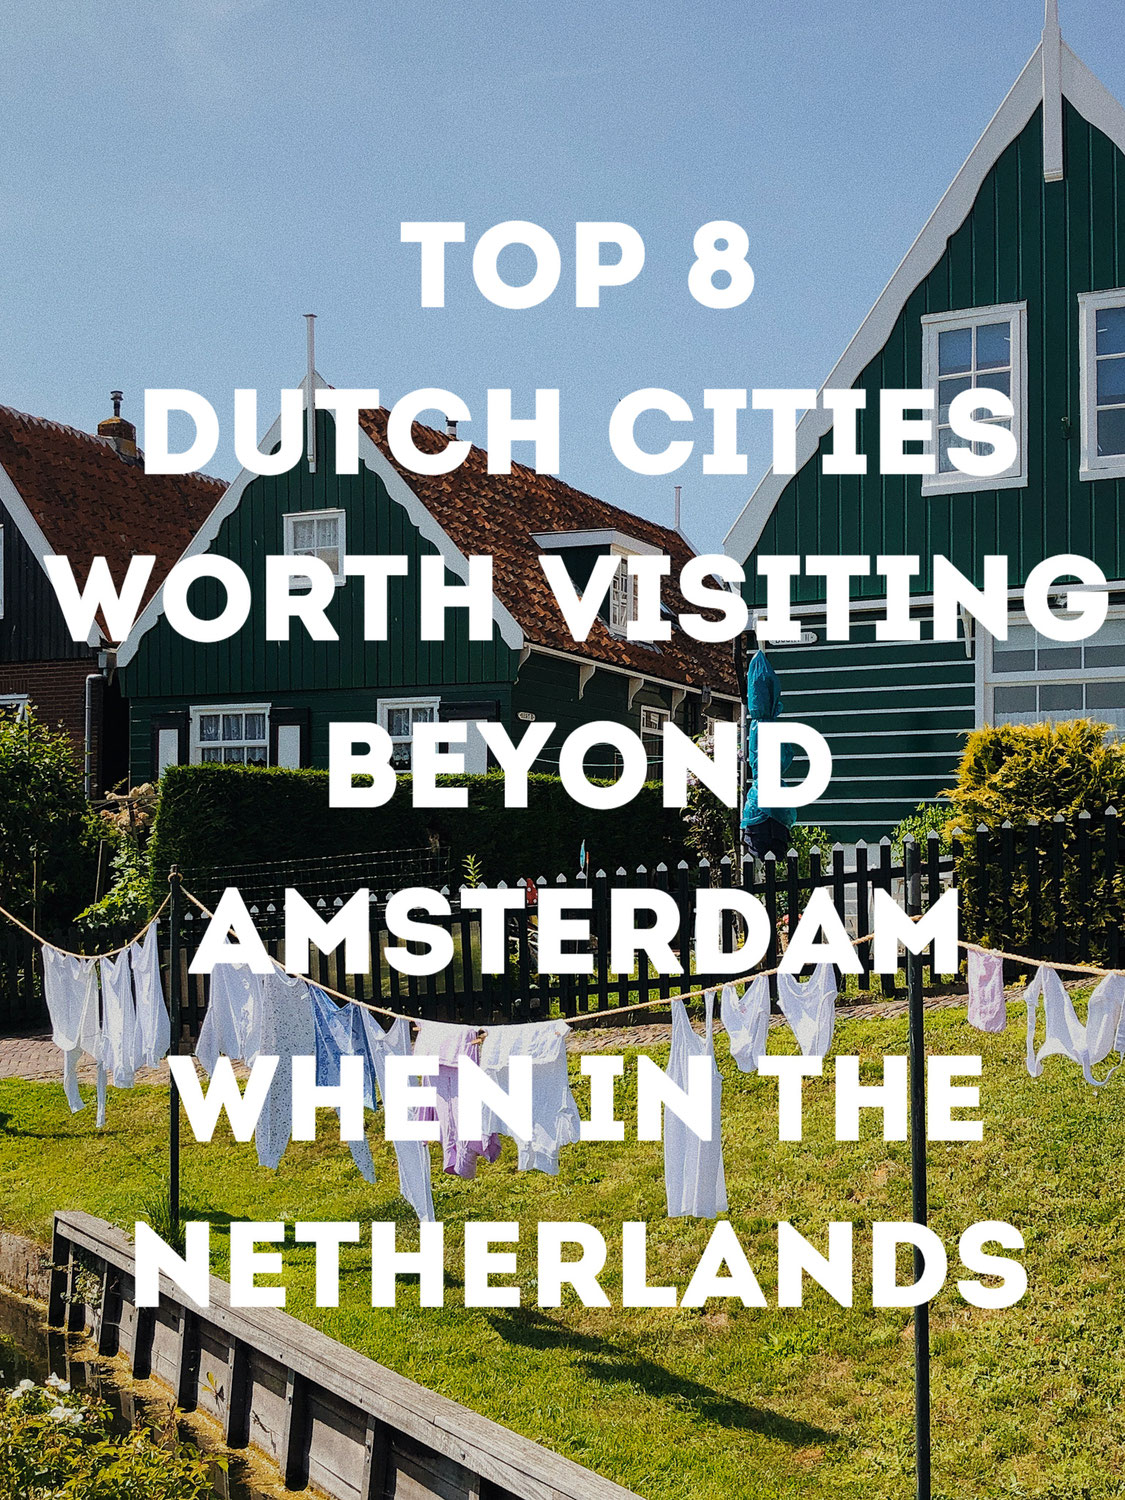 Top 8 Dutch Cities Worth Visiting Beyond Amsterdam When in The Netherlands